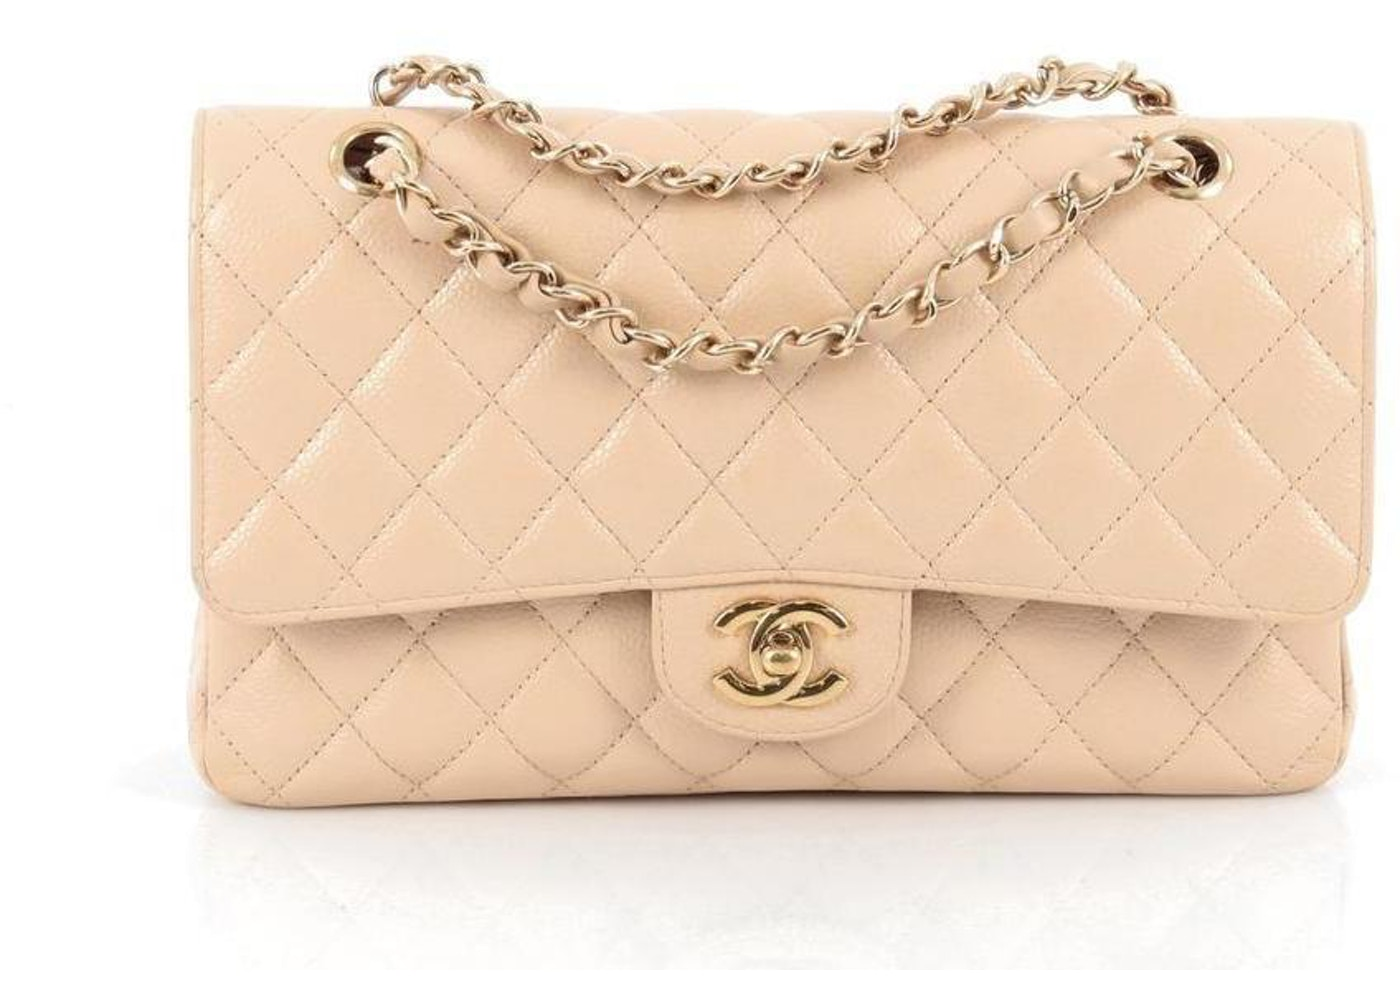 Classic Double Flap Diamond Quilted Medium Nude by Chanel, available on stockx.com Natasha Oakley Bags Exact Product